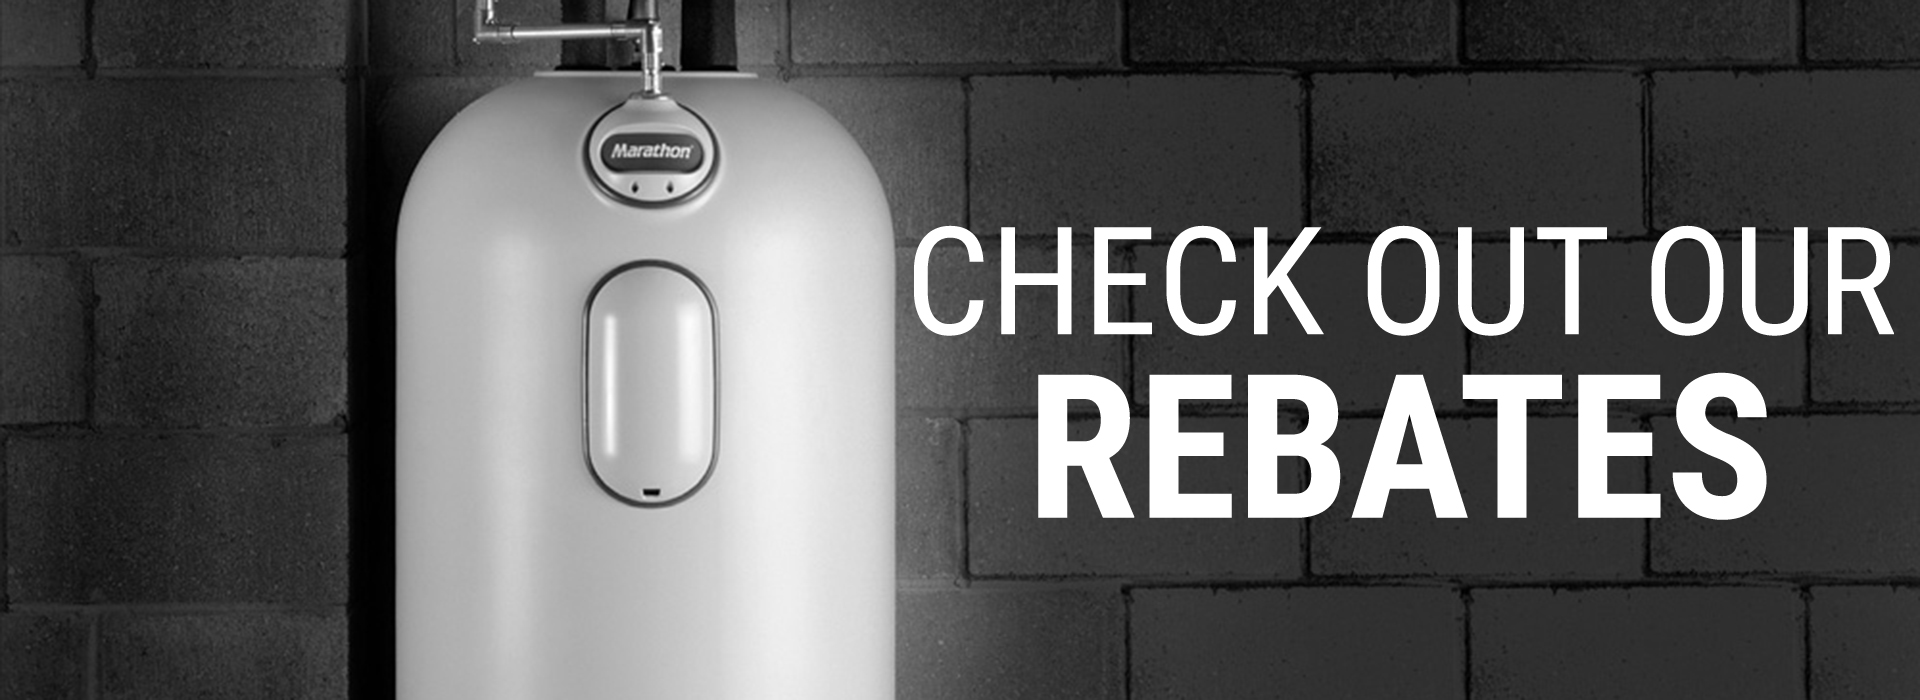 "Water heater with text saying ""Check out our Rebates"""